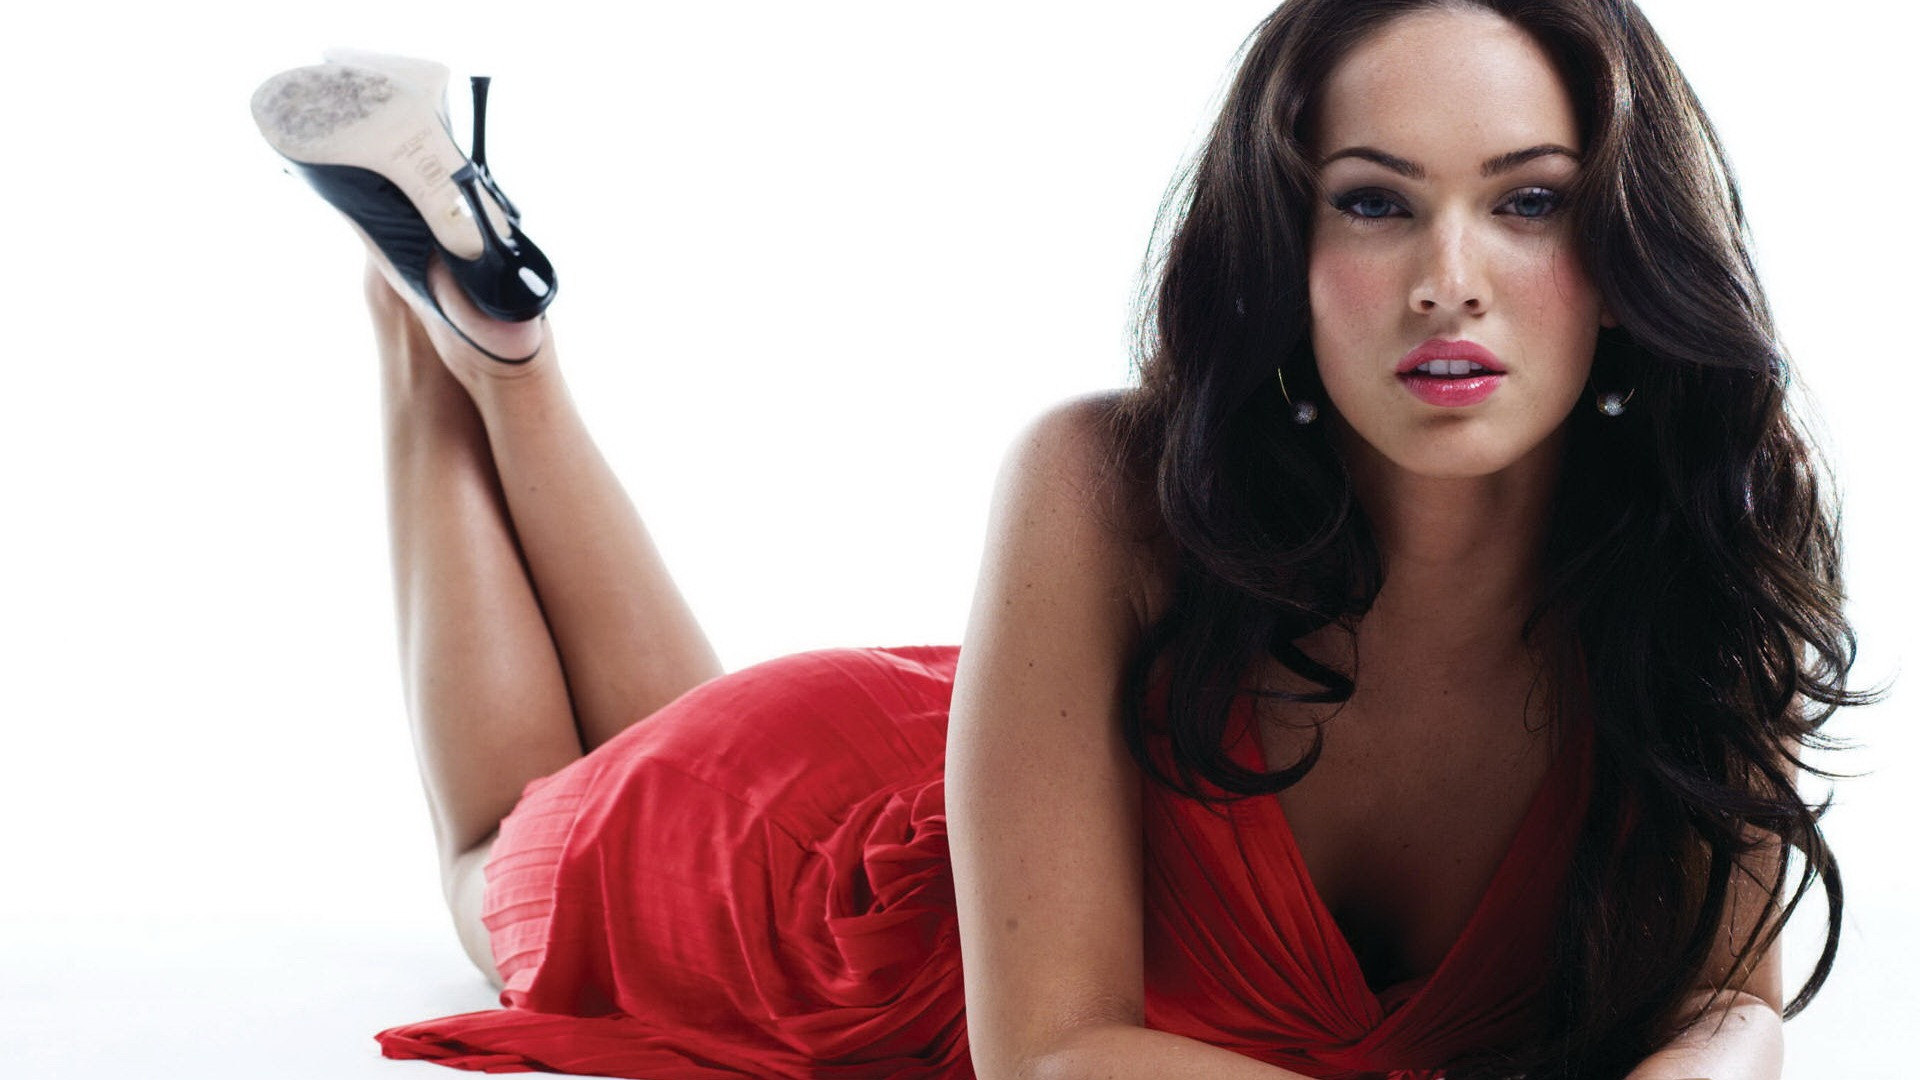 Megan Fox Hd Wallpapers 1080P 205563 1920x1080